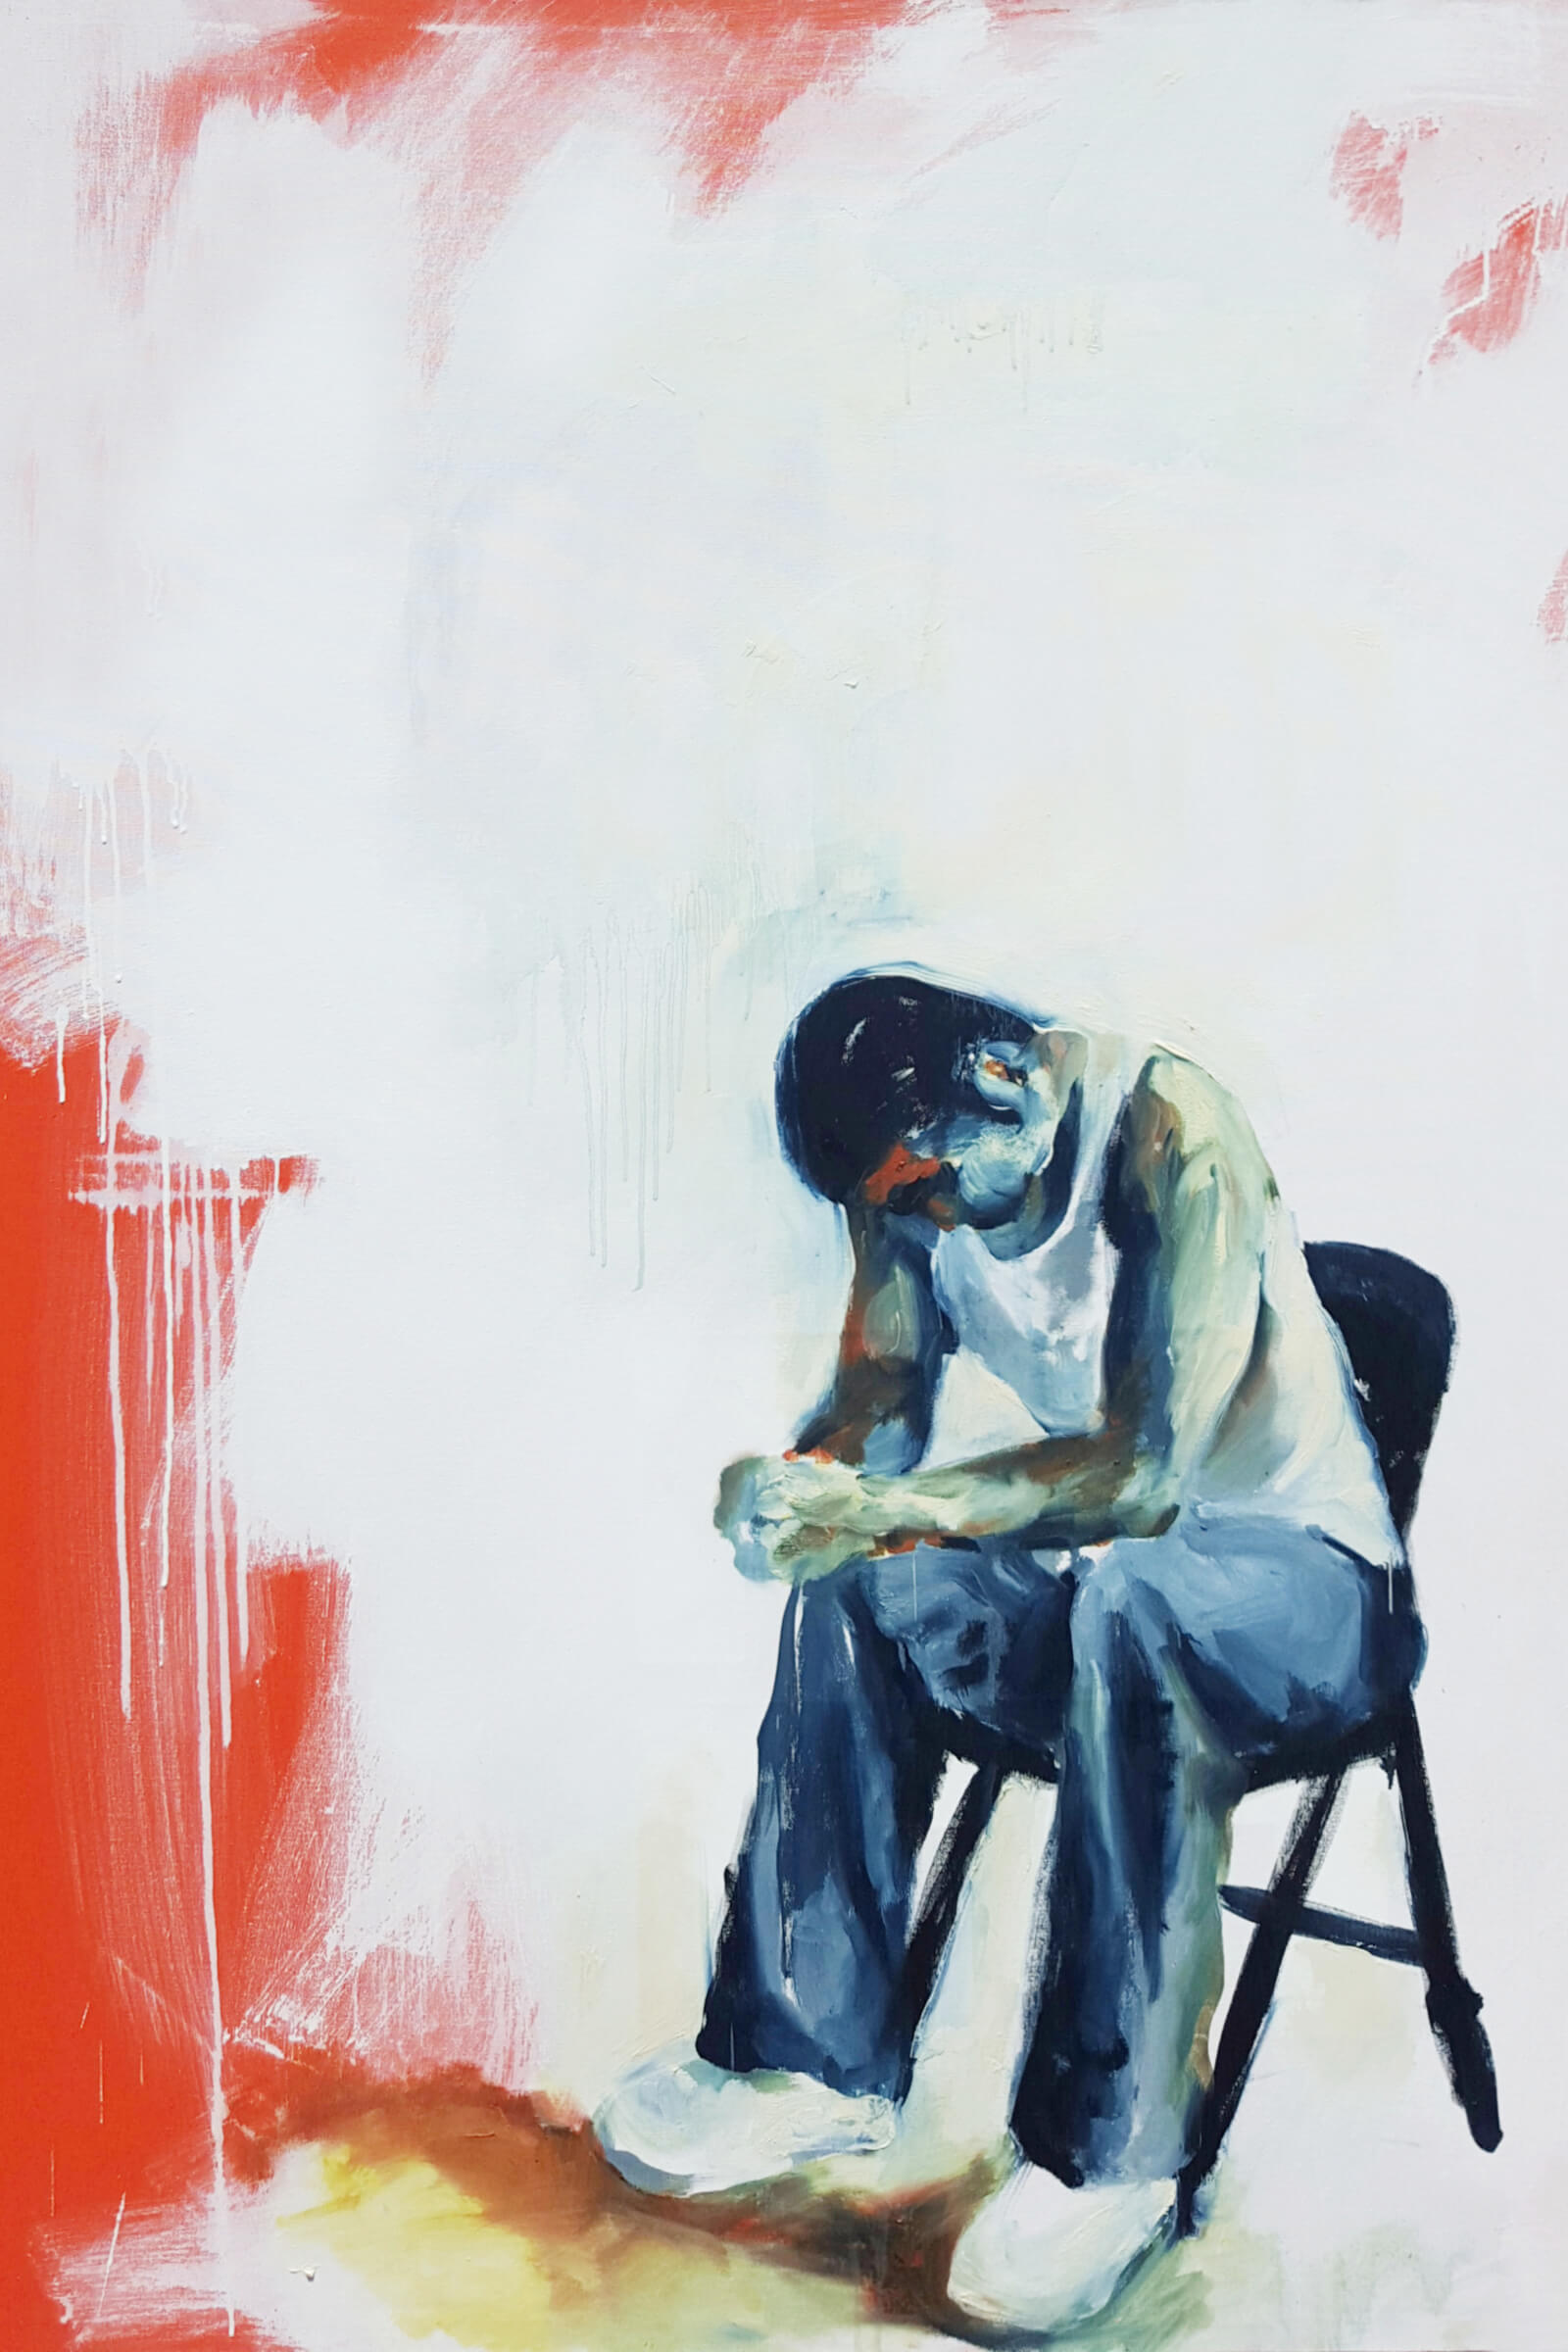 A painting in rough brushstrokes of a male figure weating blue pants and a white tanktop, seated on a black folding chair. The figure is leaning forward, elbows on knees, hands folded together, head bowed. The bakcground is broad-strokes of white paint, dripping in places, over a dark orange background.